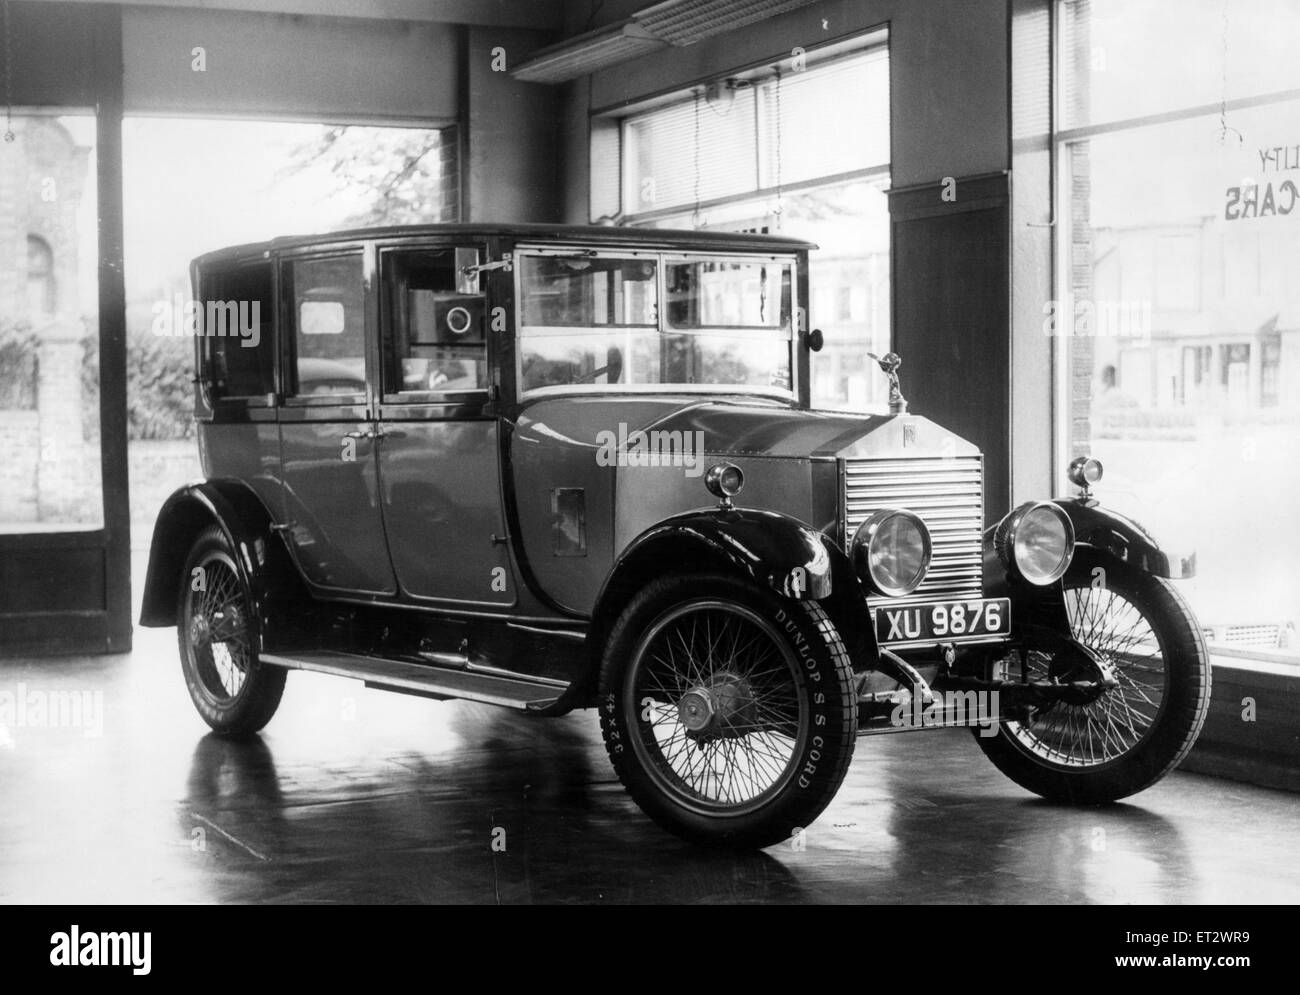 1924 Landaulette Rolls Royce Thompson Hart, at Breckon Hill Motors, Middlesbrough, 26th June 1966. - Stock Image